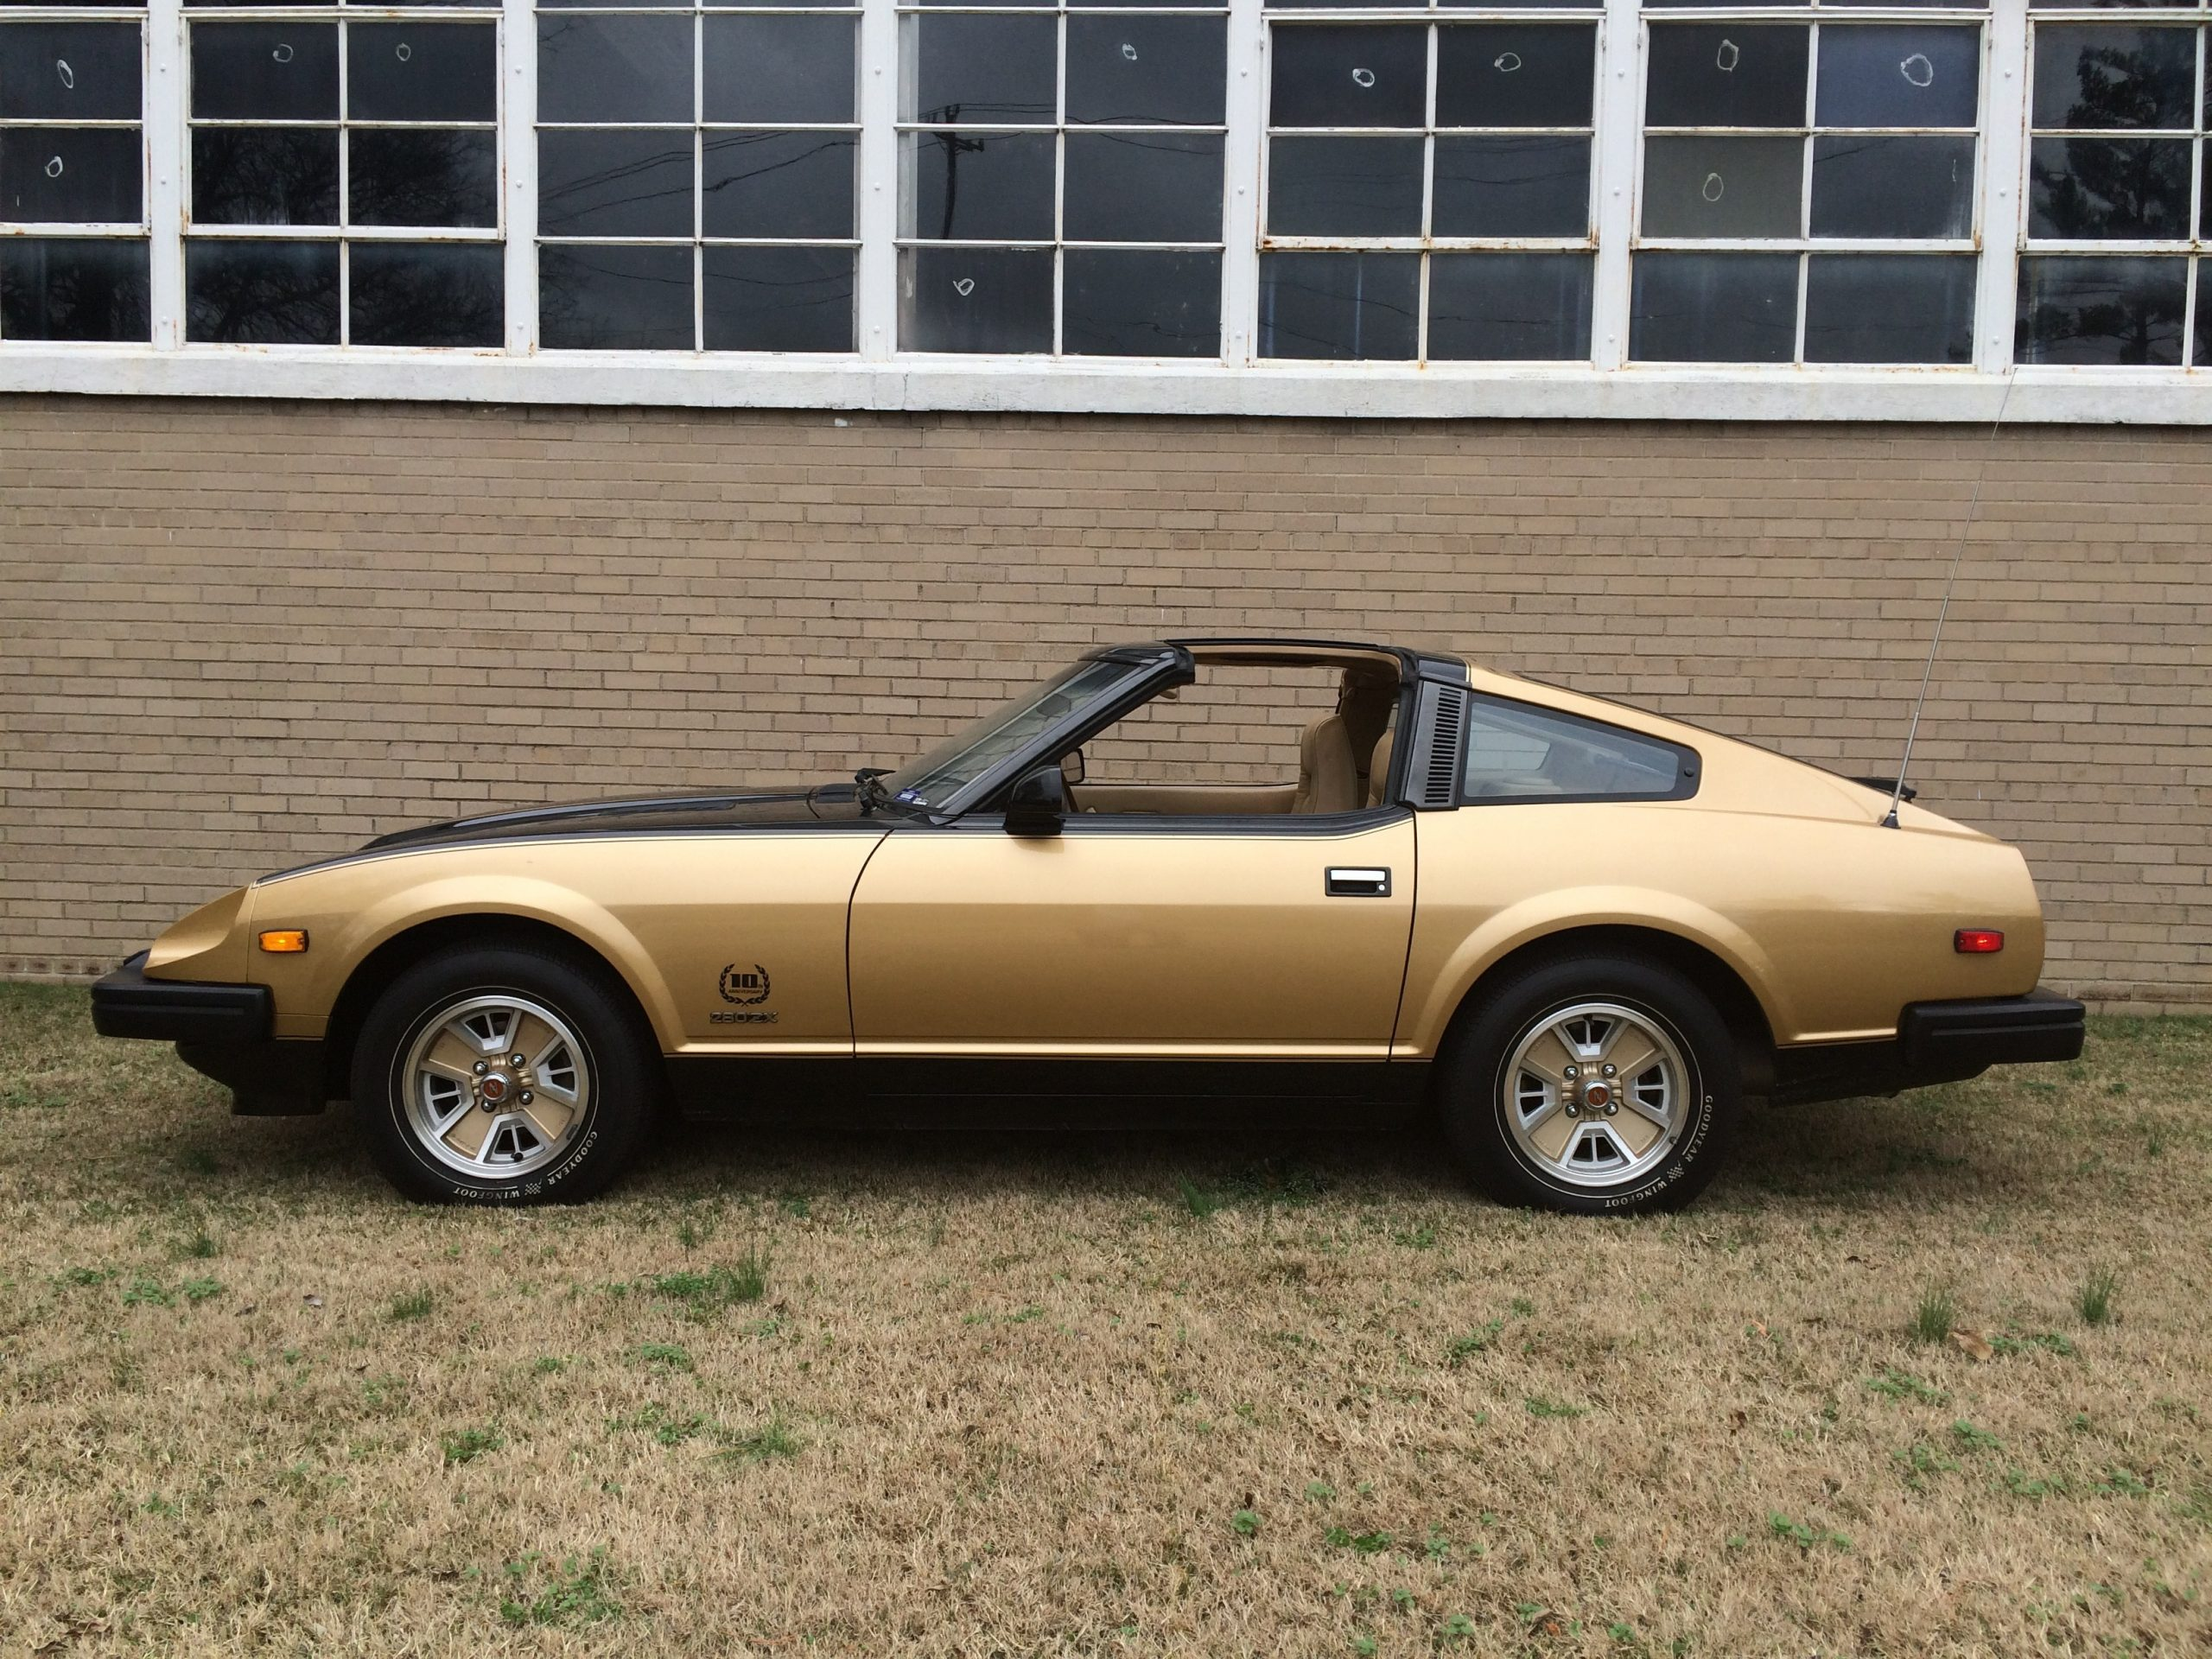 1980 Datsun 280ZX 10th Anniversary Edition